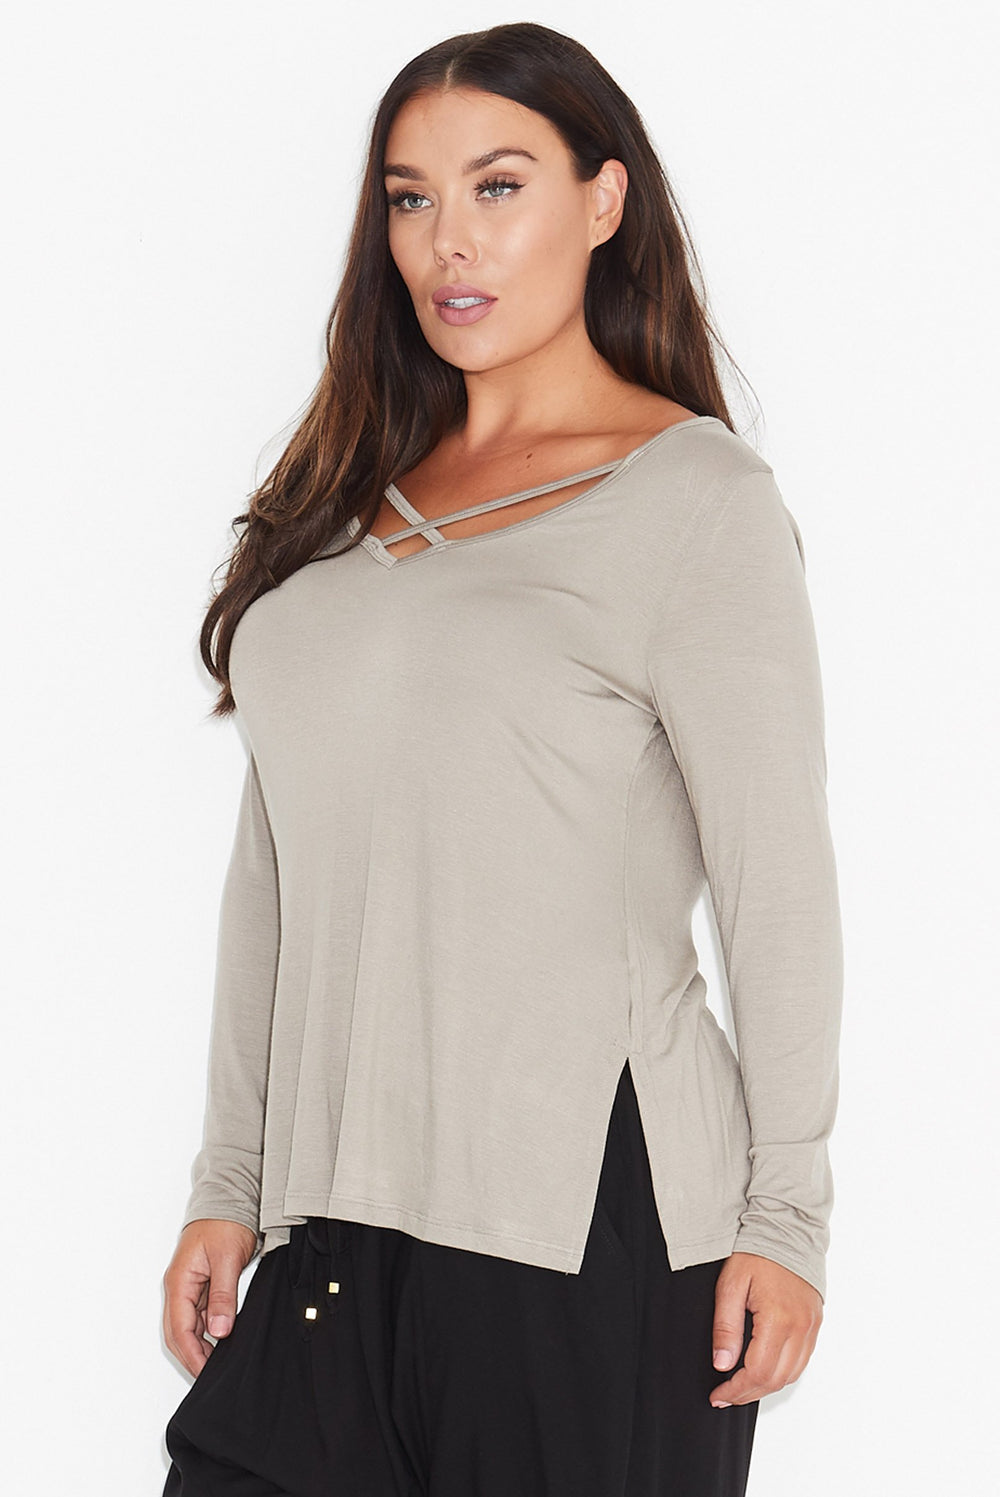 New // 17 SUNDAYS 'Cross Neck Top - Taupe' // Sizes 22-24 & 26